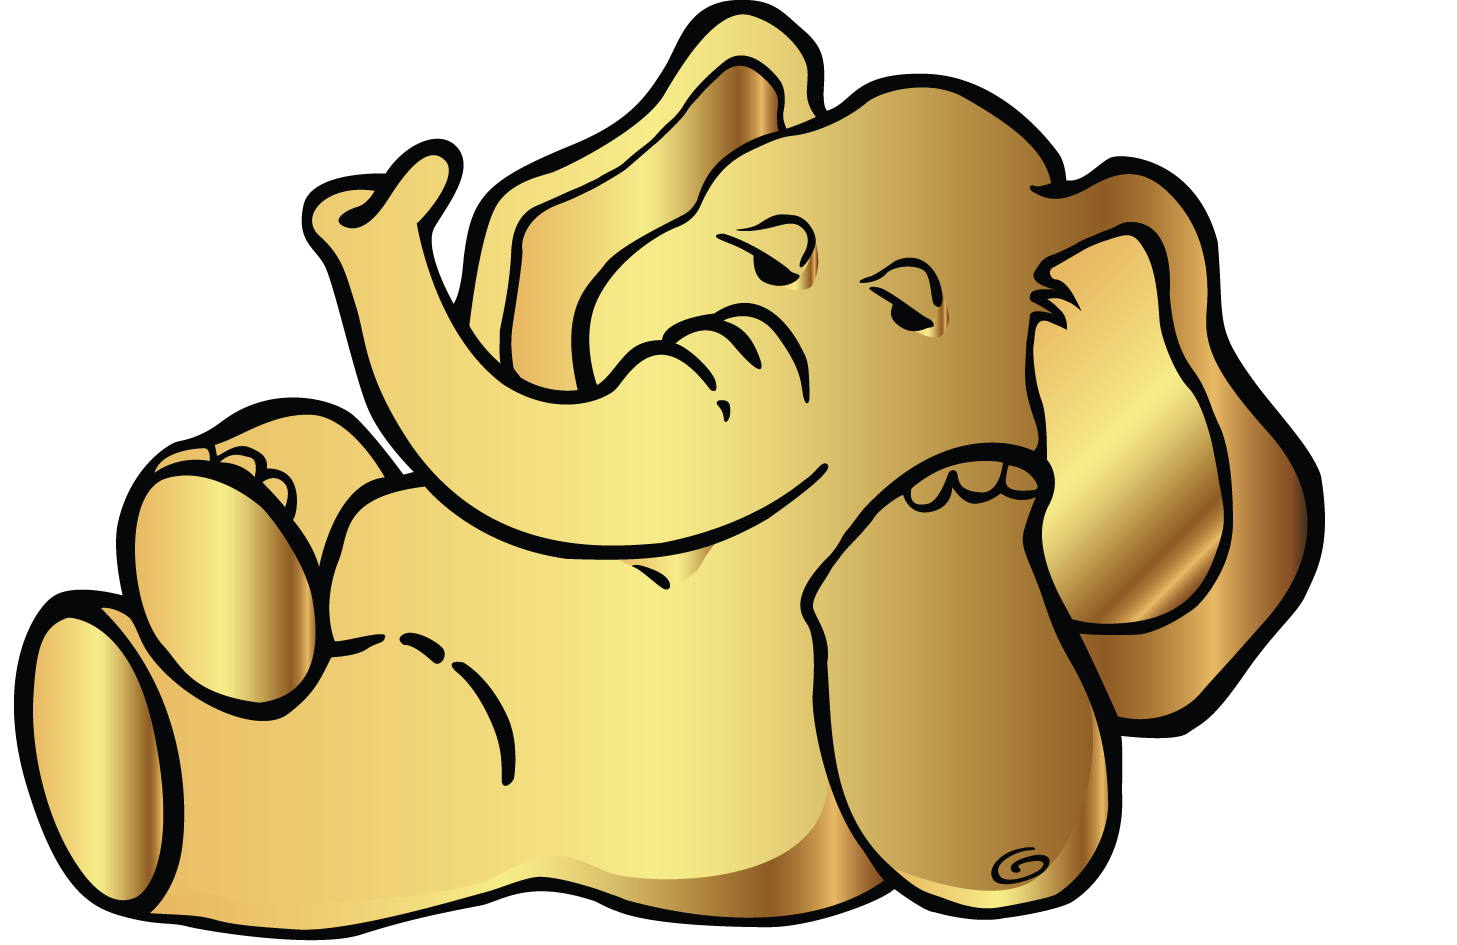 Golden Elephant Png : Yellow elephant artwork, golden elephant, mammal, golden frame, vertebrate png.